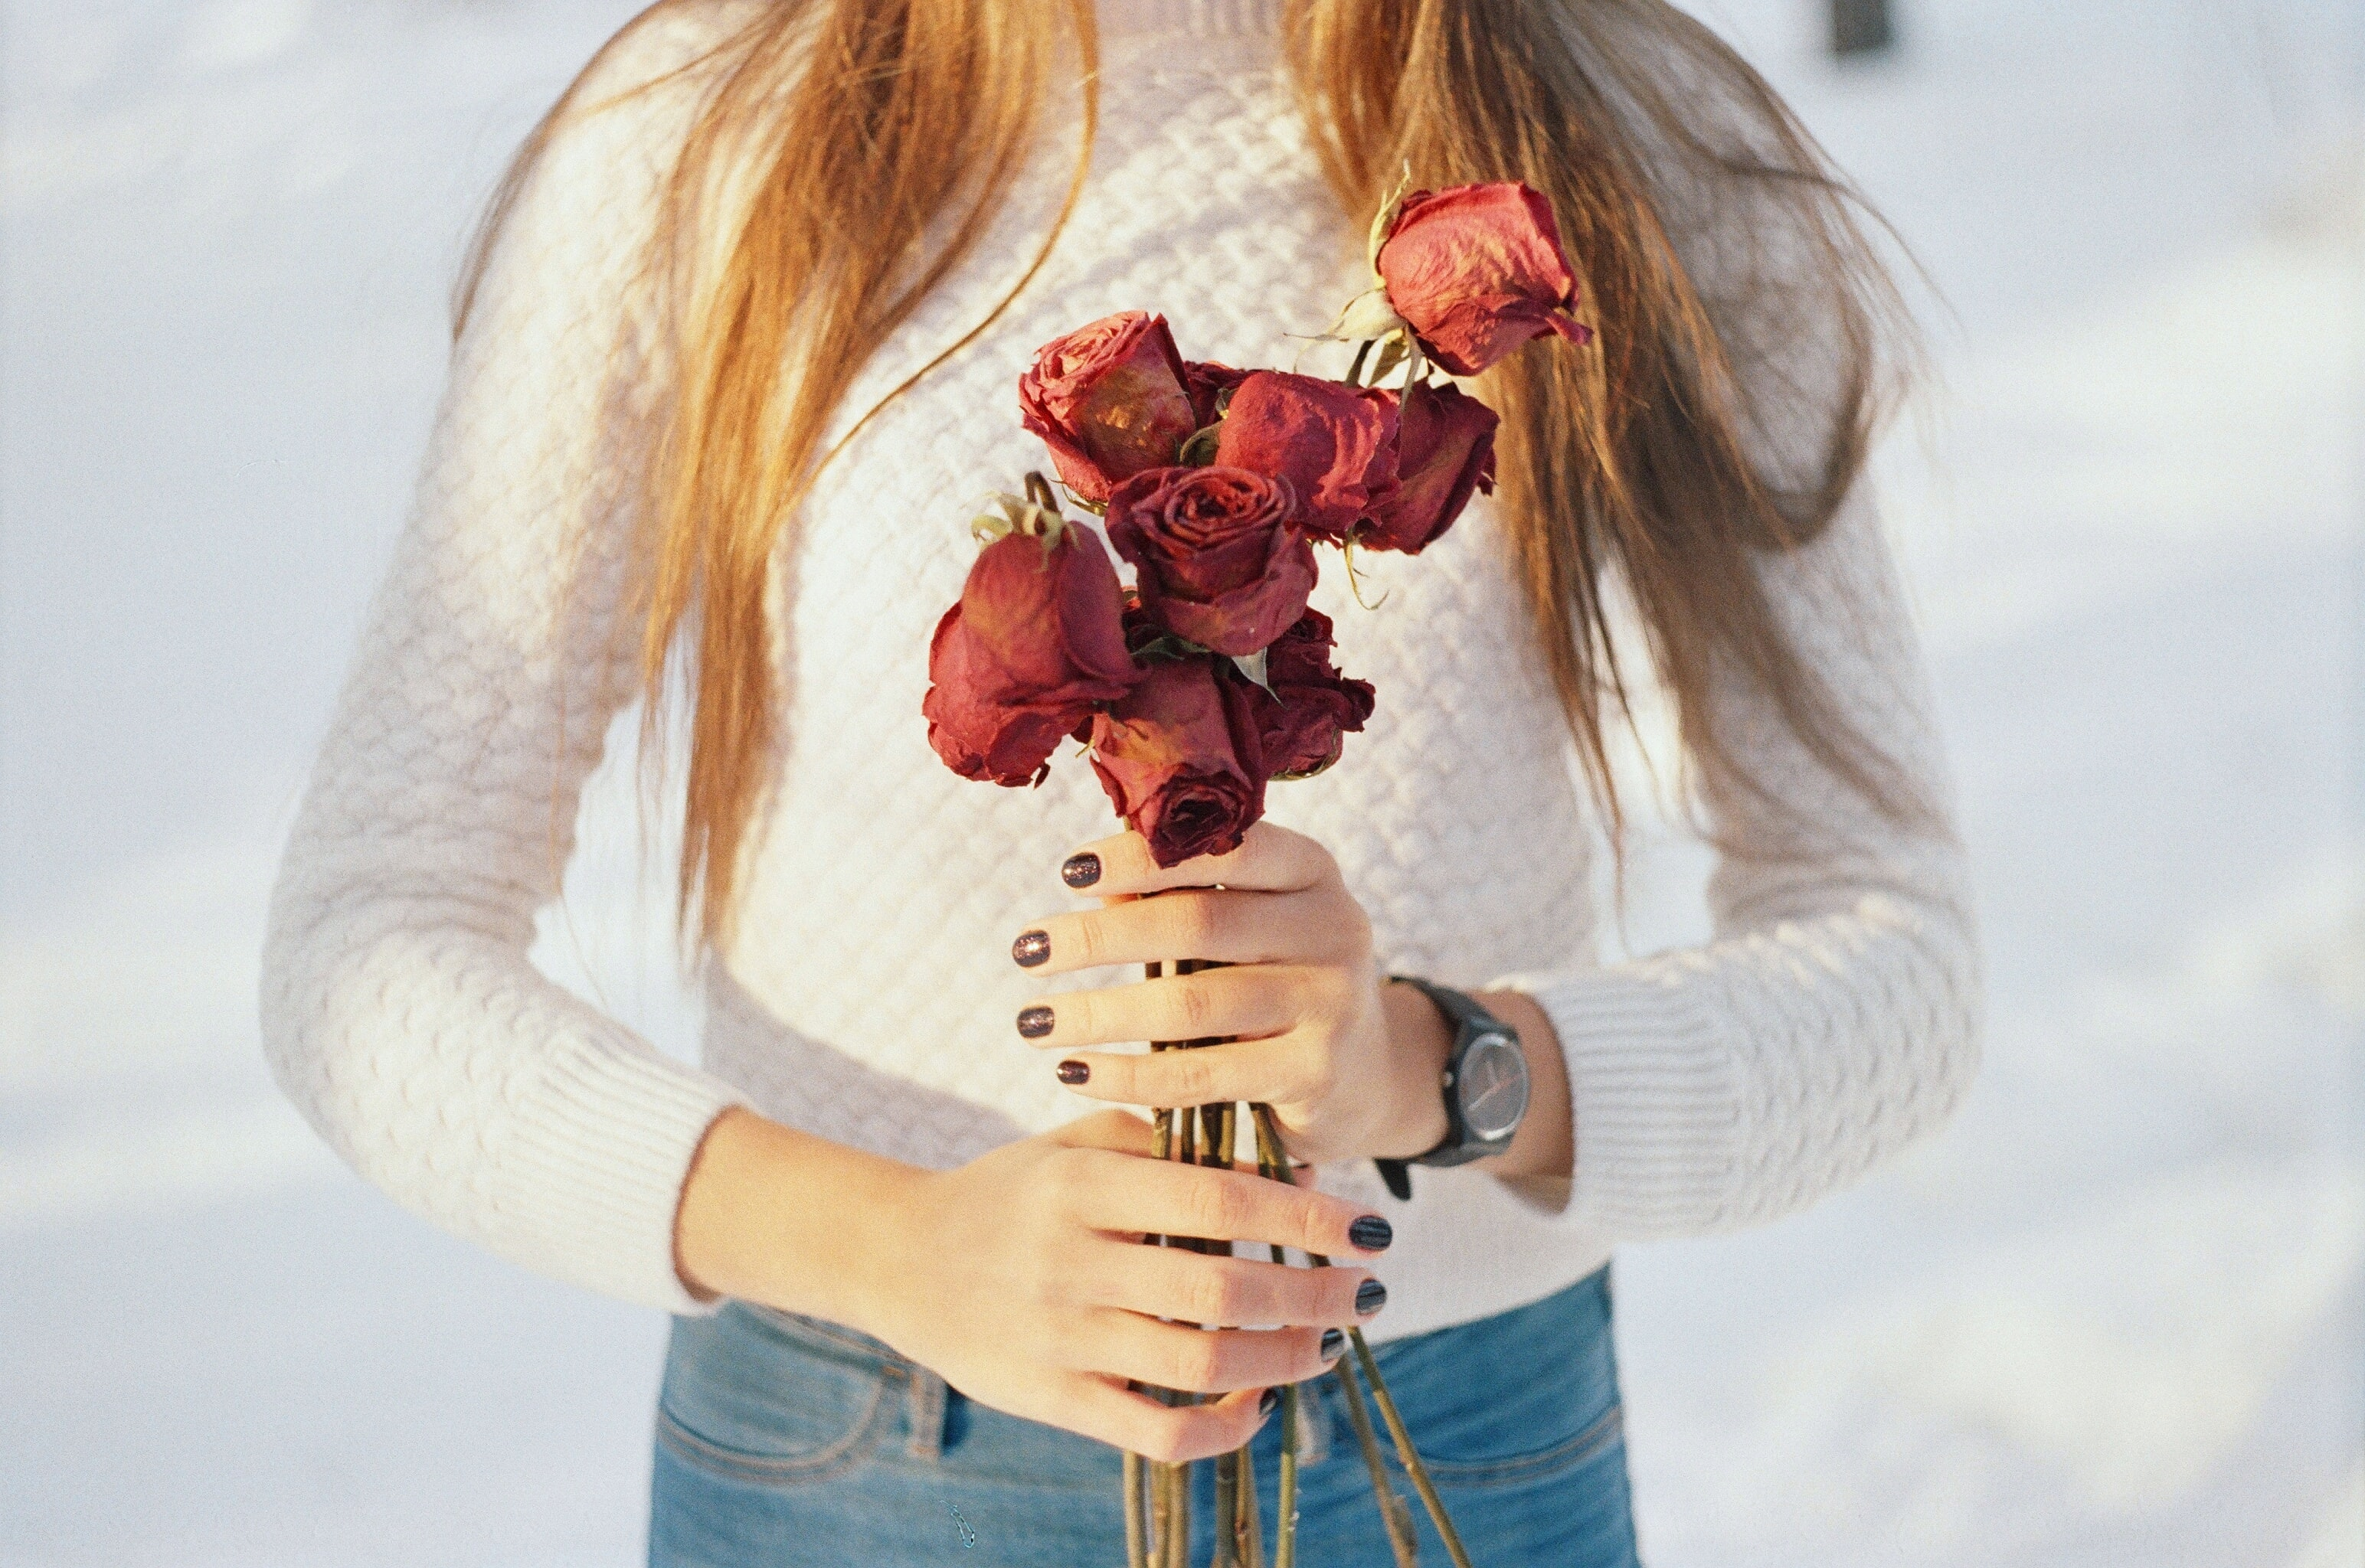 person holding bouquet of red roses